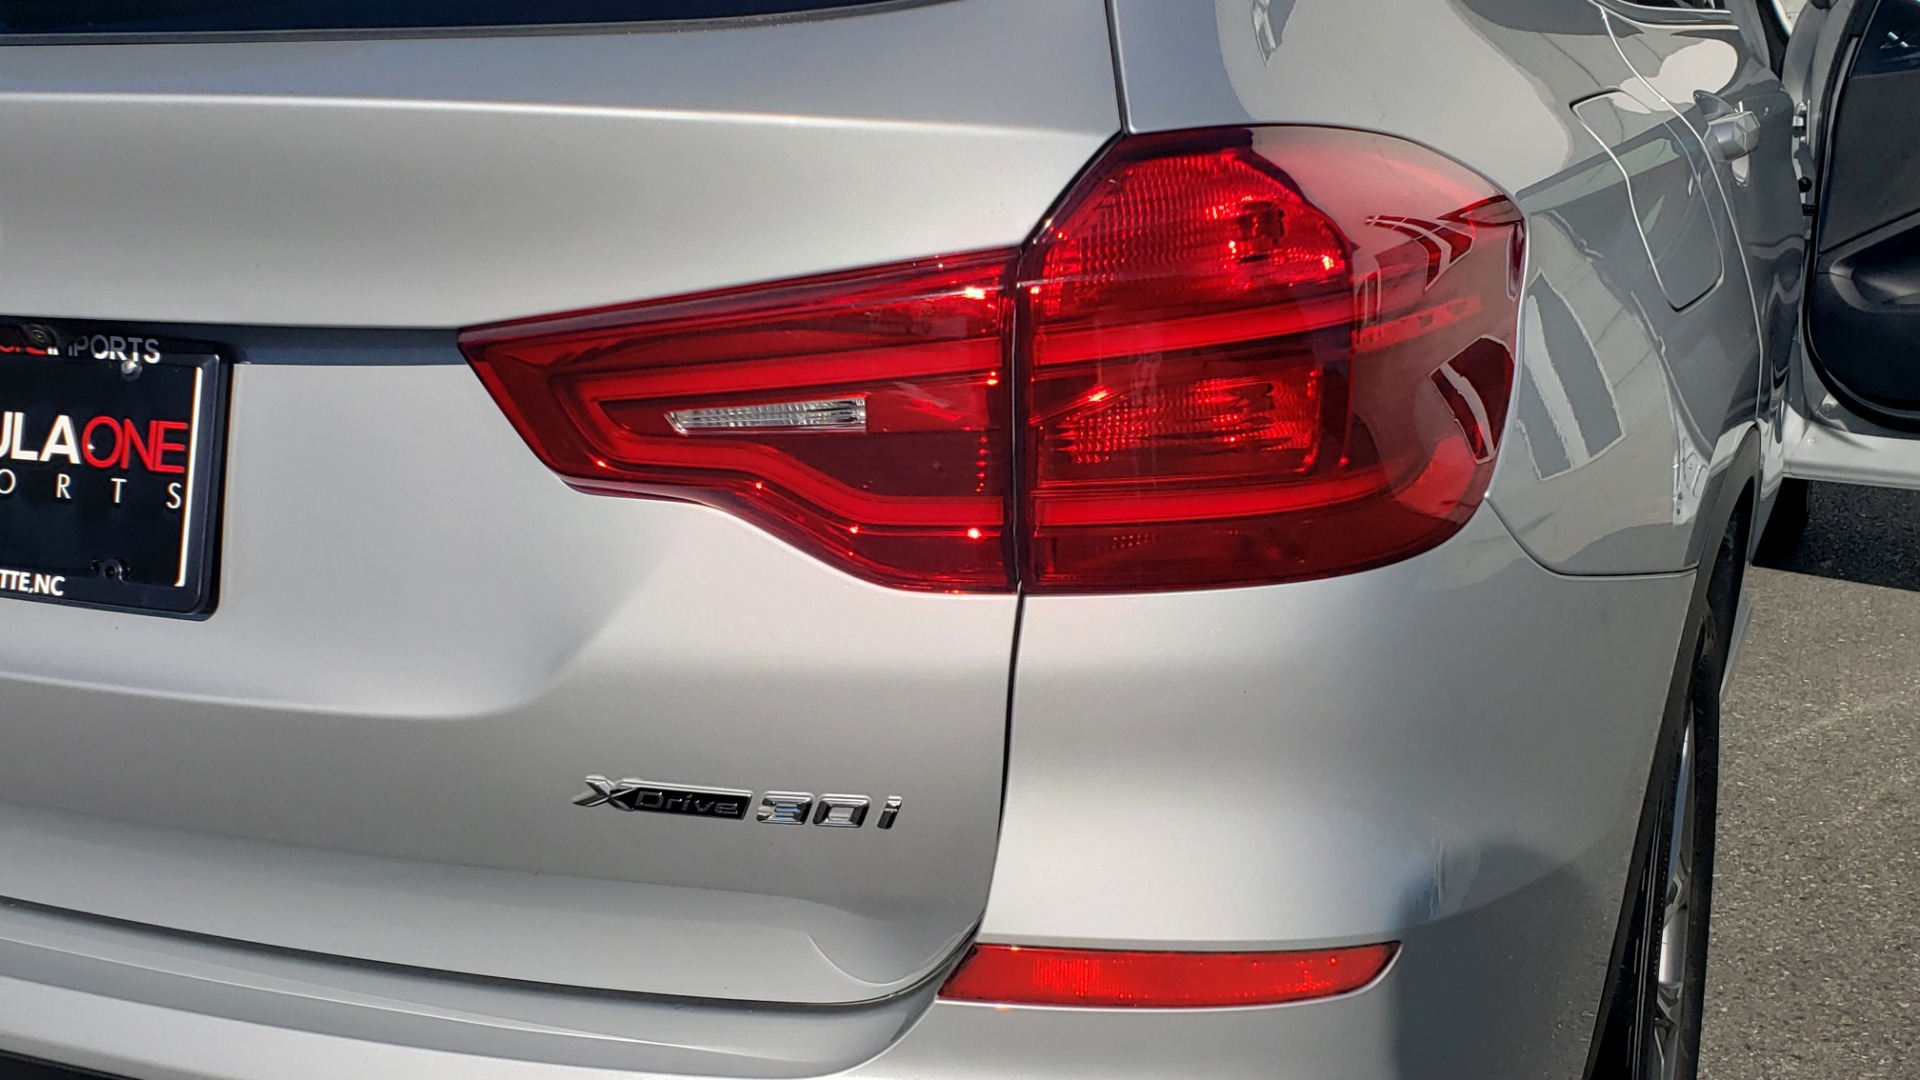 Used 2019 BMW X3 XDRIVE30I / DRVR ASST / PANO-ROOF / HTD STS / REARVIEW for sale $41,995 at Formula Imports in Charlotte NC 28227 33